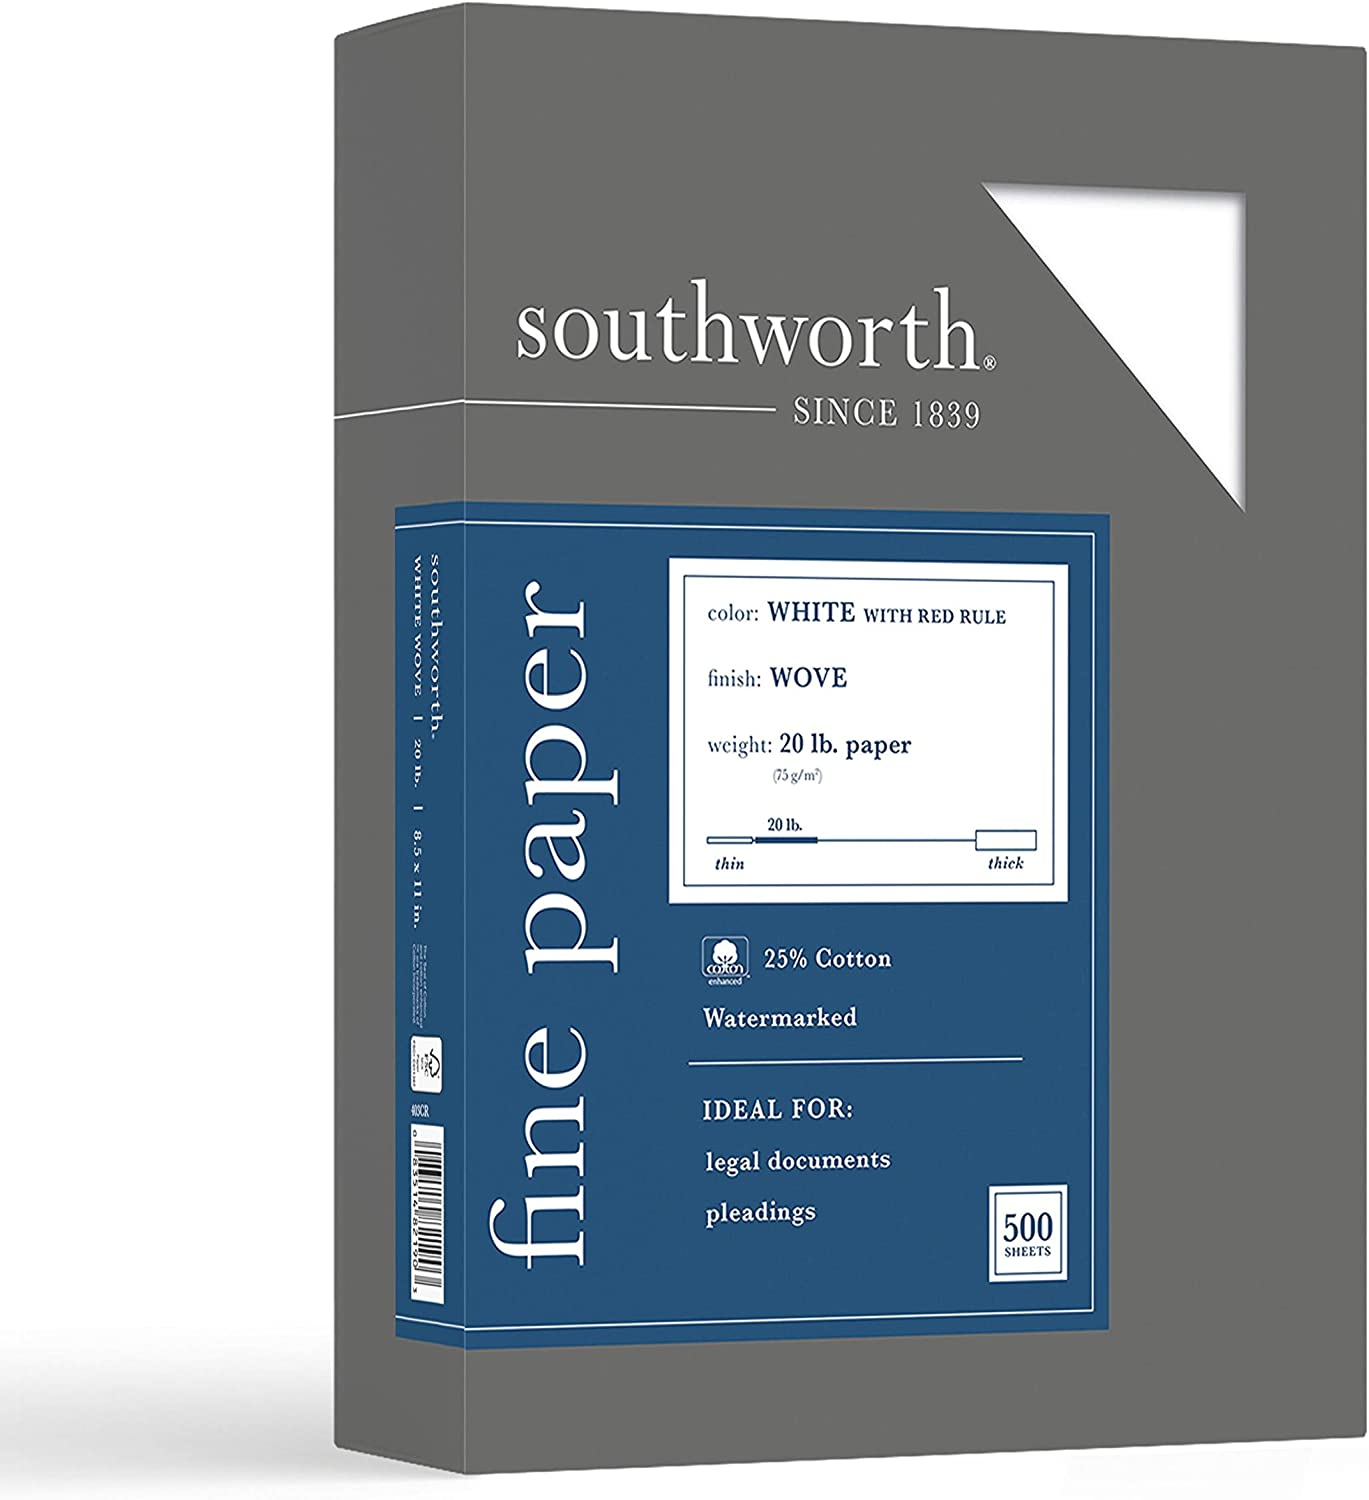 Southworth 25% Cotton Ruled mart Business Raleigh Mall Paper Inches 11 20 8.5 x